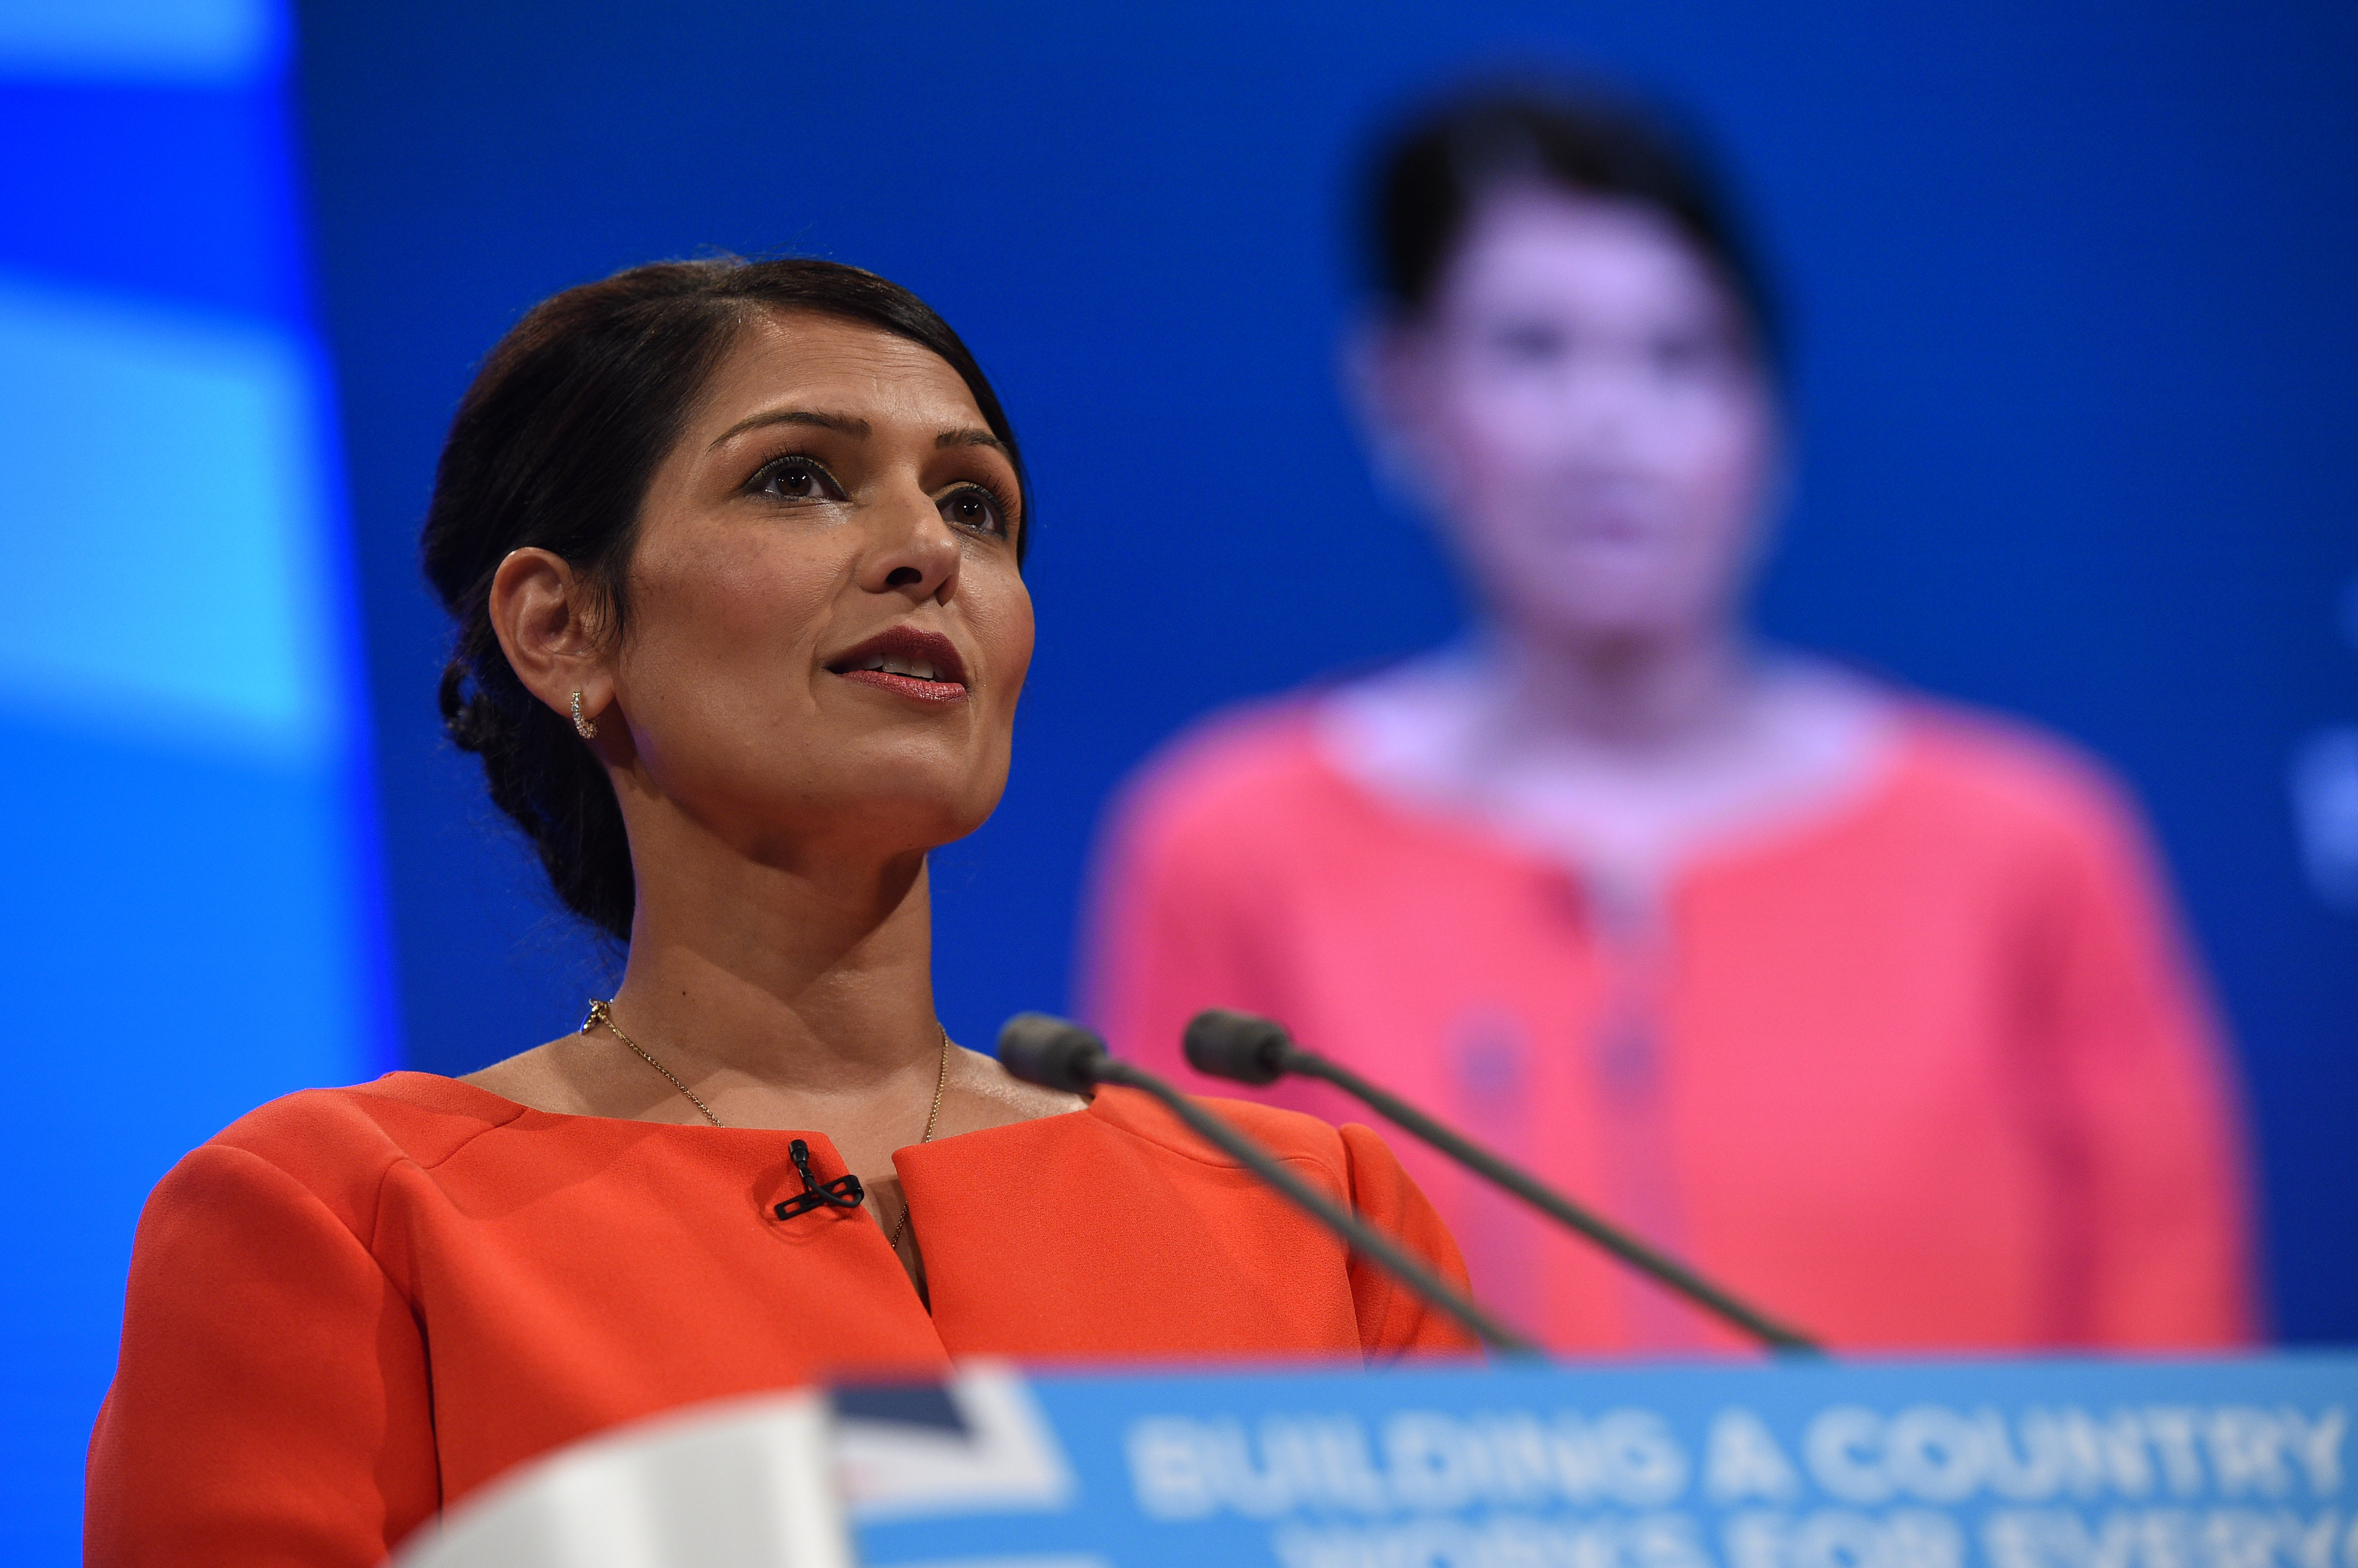 Britain's International Development Secretary Priti Patel delivers her speech on the third day of the Conservative Party annual conference at the Manchester Central Convention Centre in Manchester on October 3, 2017.